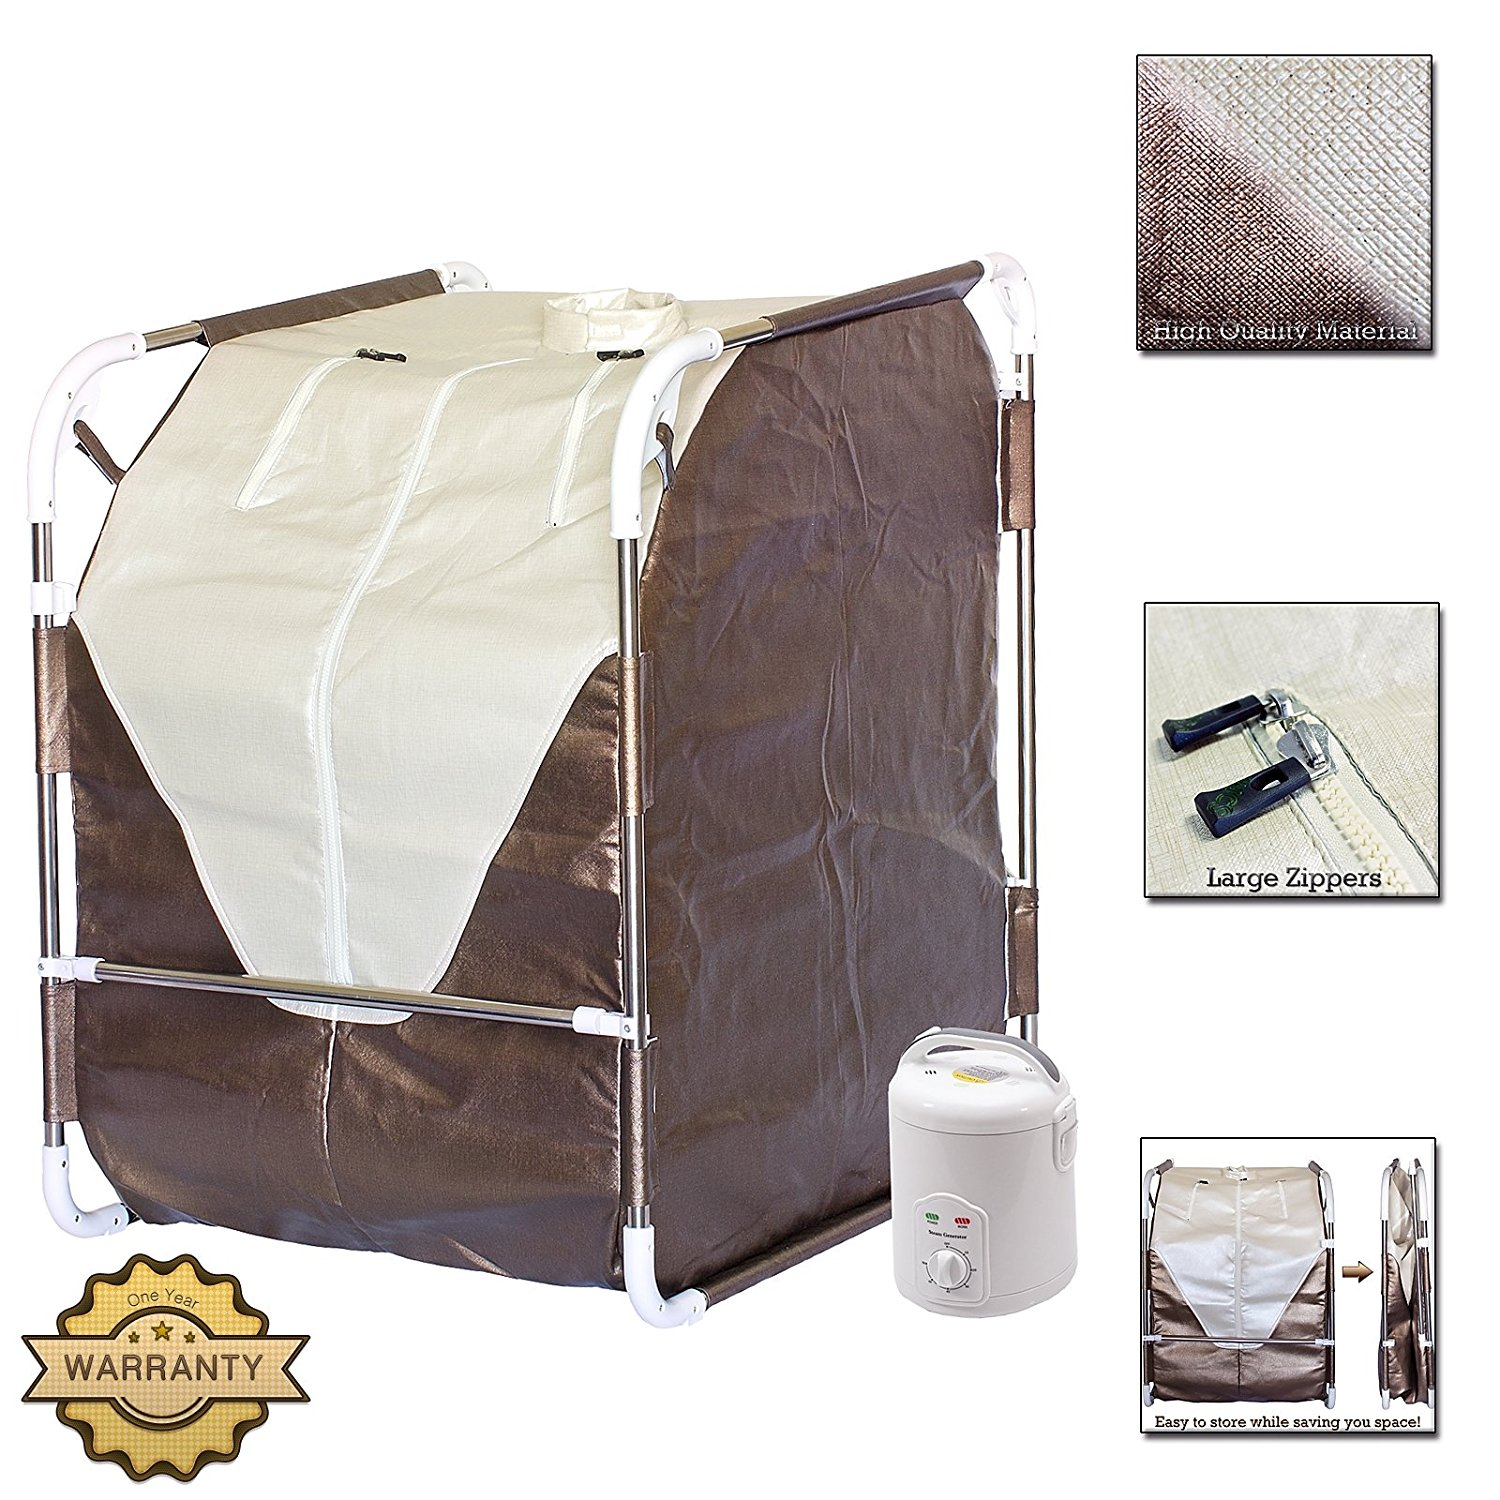 DURHERM Portable Folding Spa Home Steam Sauna for Detox T...